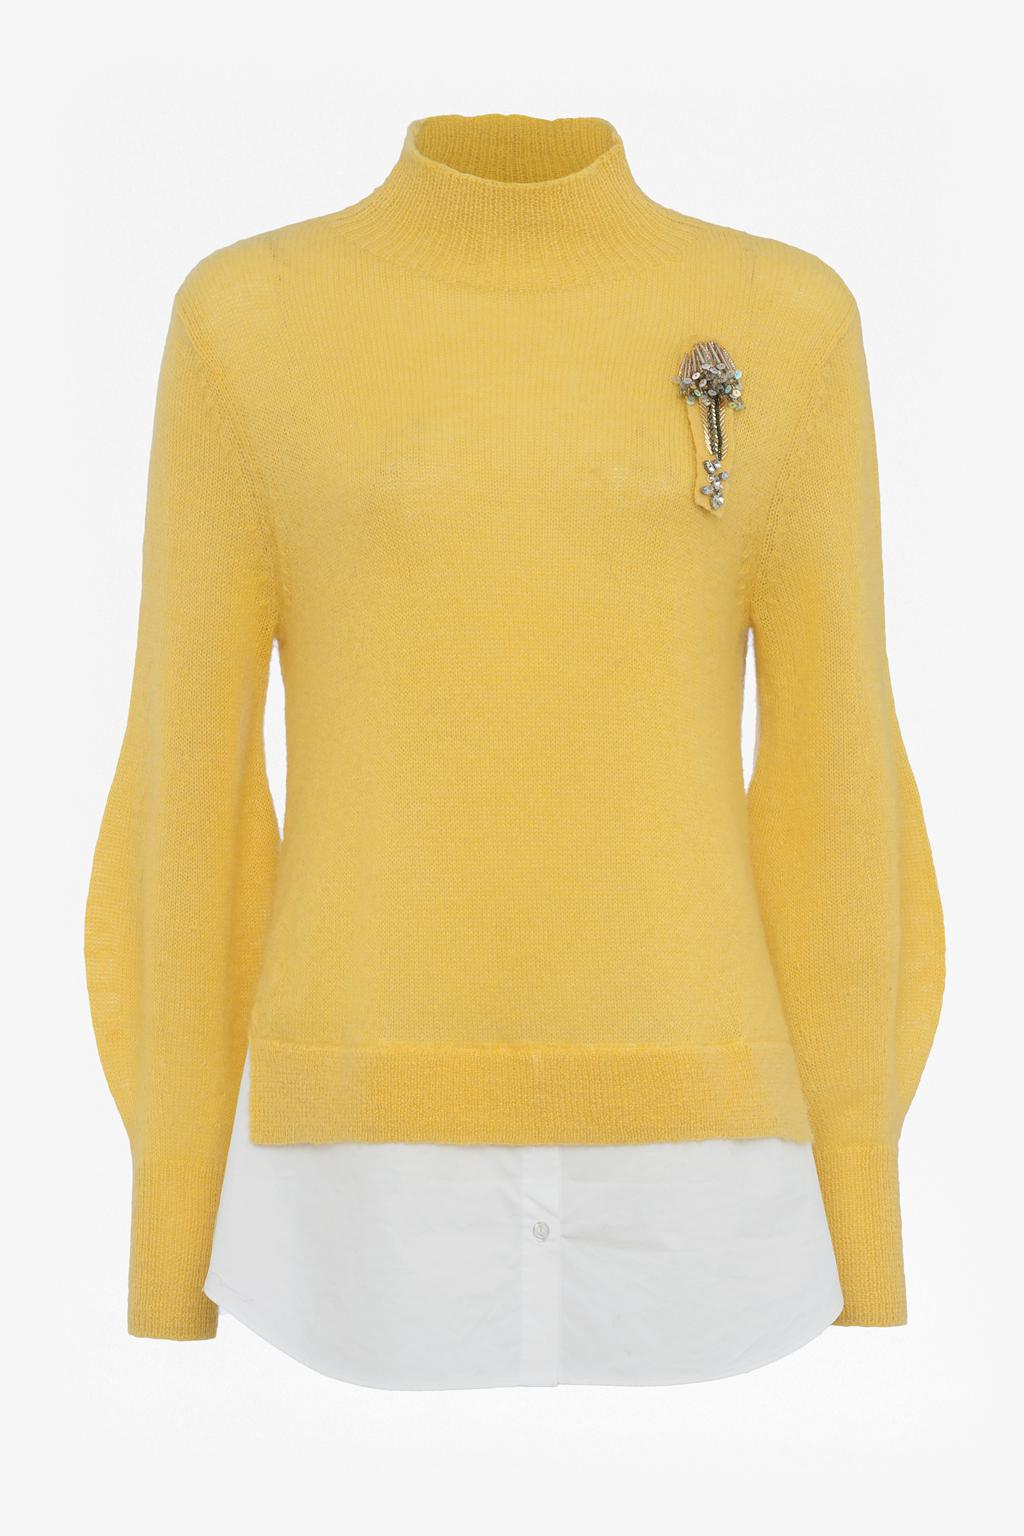 827915cb1eb50d ... Usa clearance sale 5f87a 8b764  Lyst - French Connection Avis  Embellished Knitted Jumper in Yellow fashion styles 900a1 6245a ...